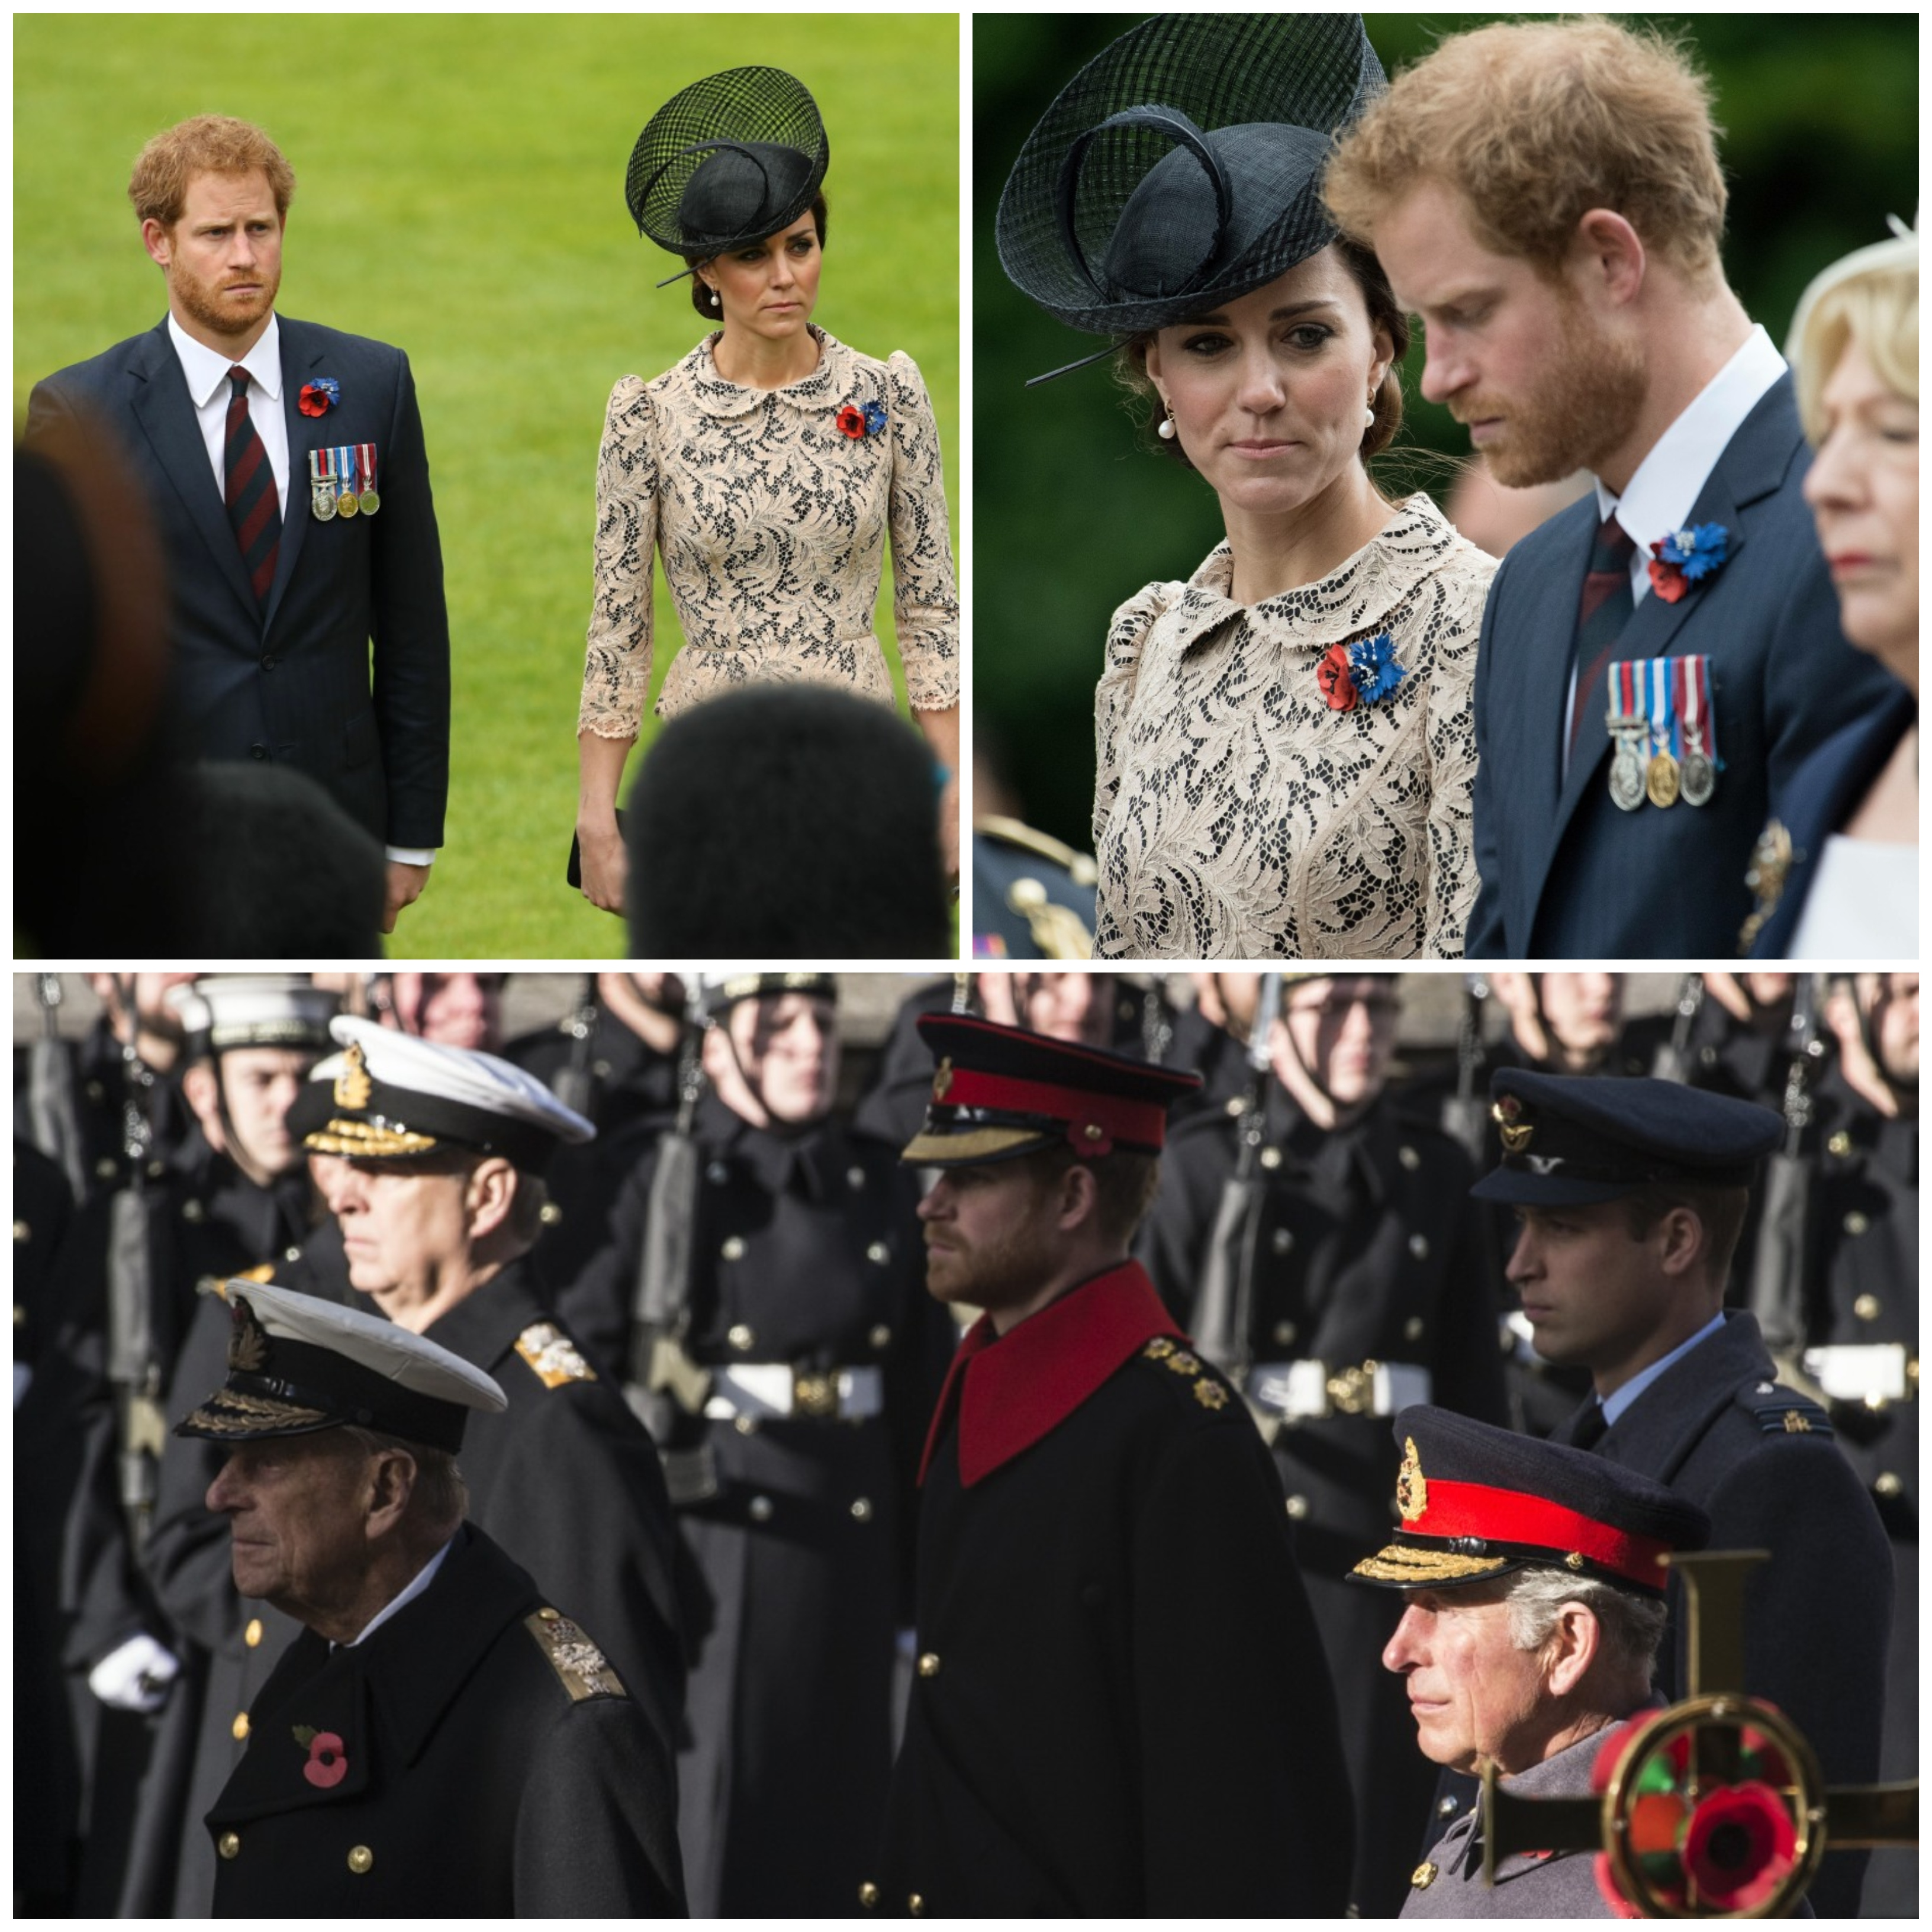 Collage of Prince Harry in uniform